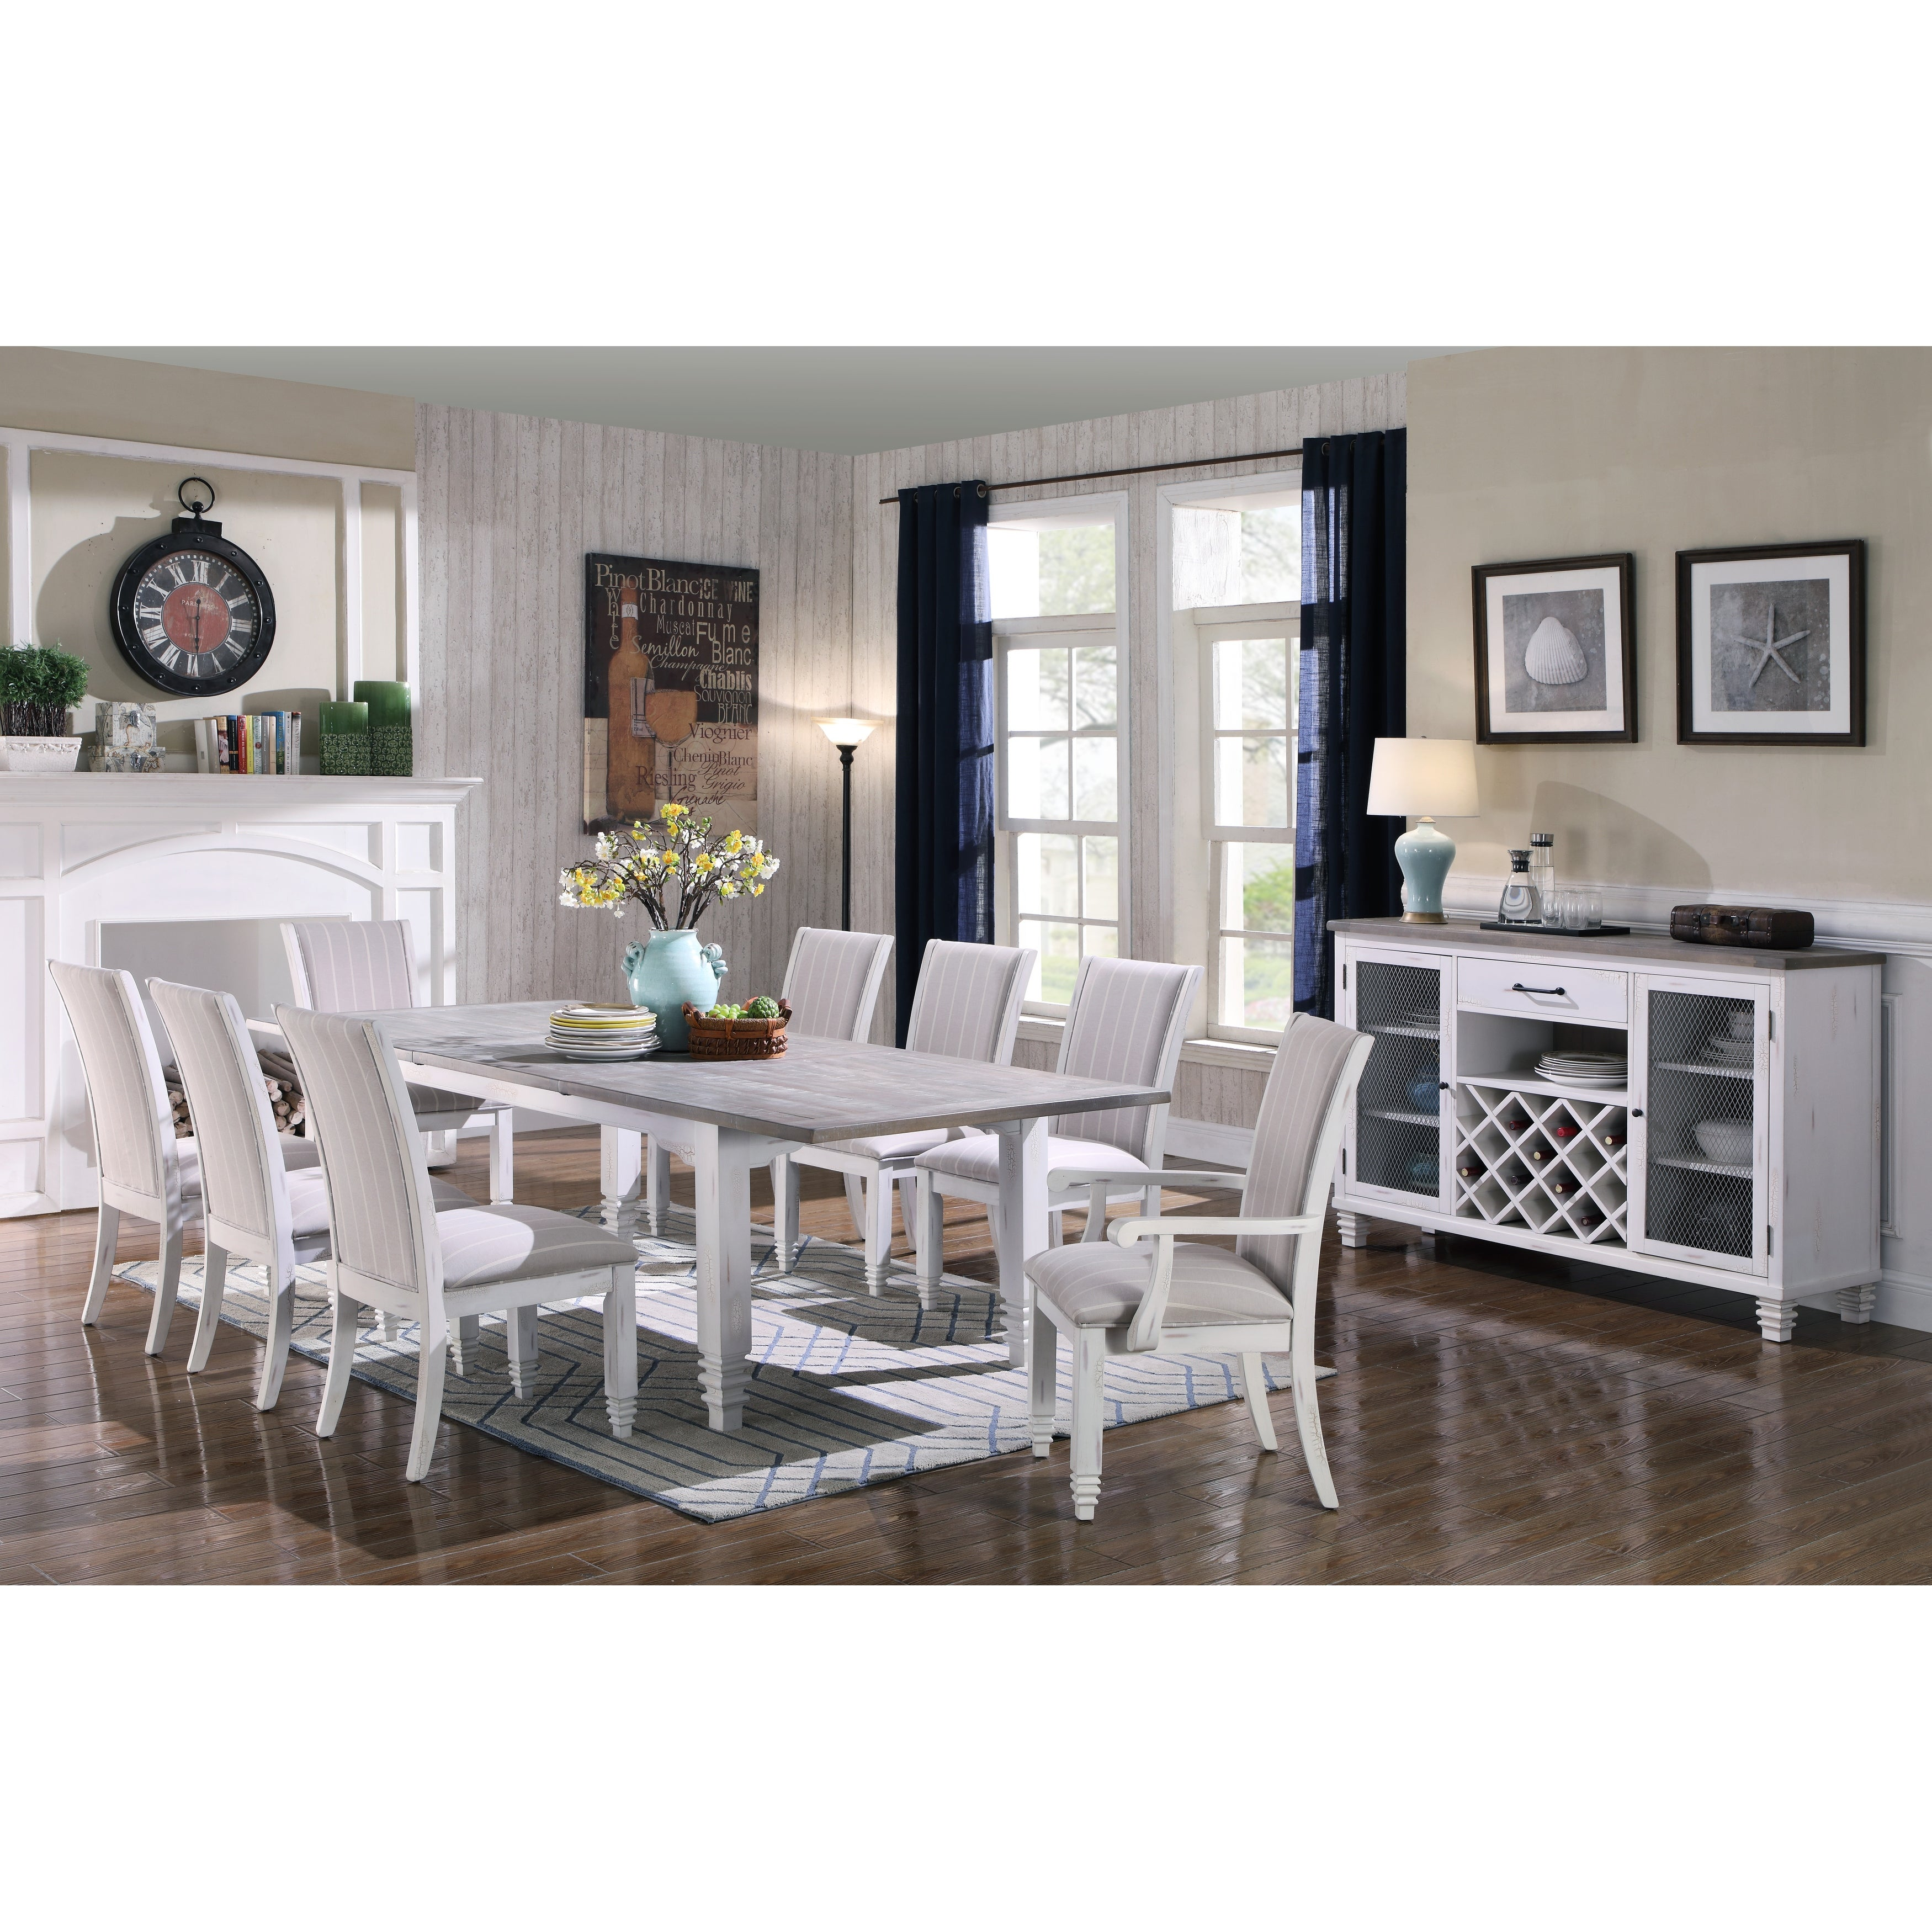 Image of: Shop Black Friday Deals On The Gray Barn Cornish Row White Country Upholstered Side Chair Overstock 25751656